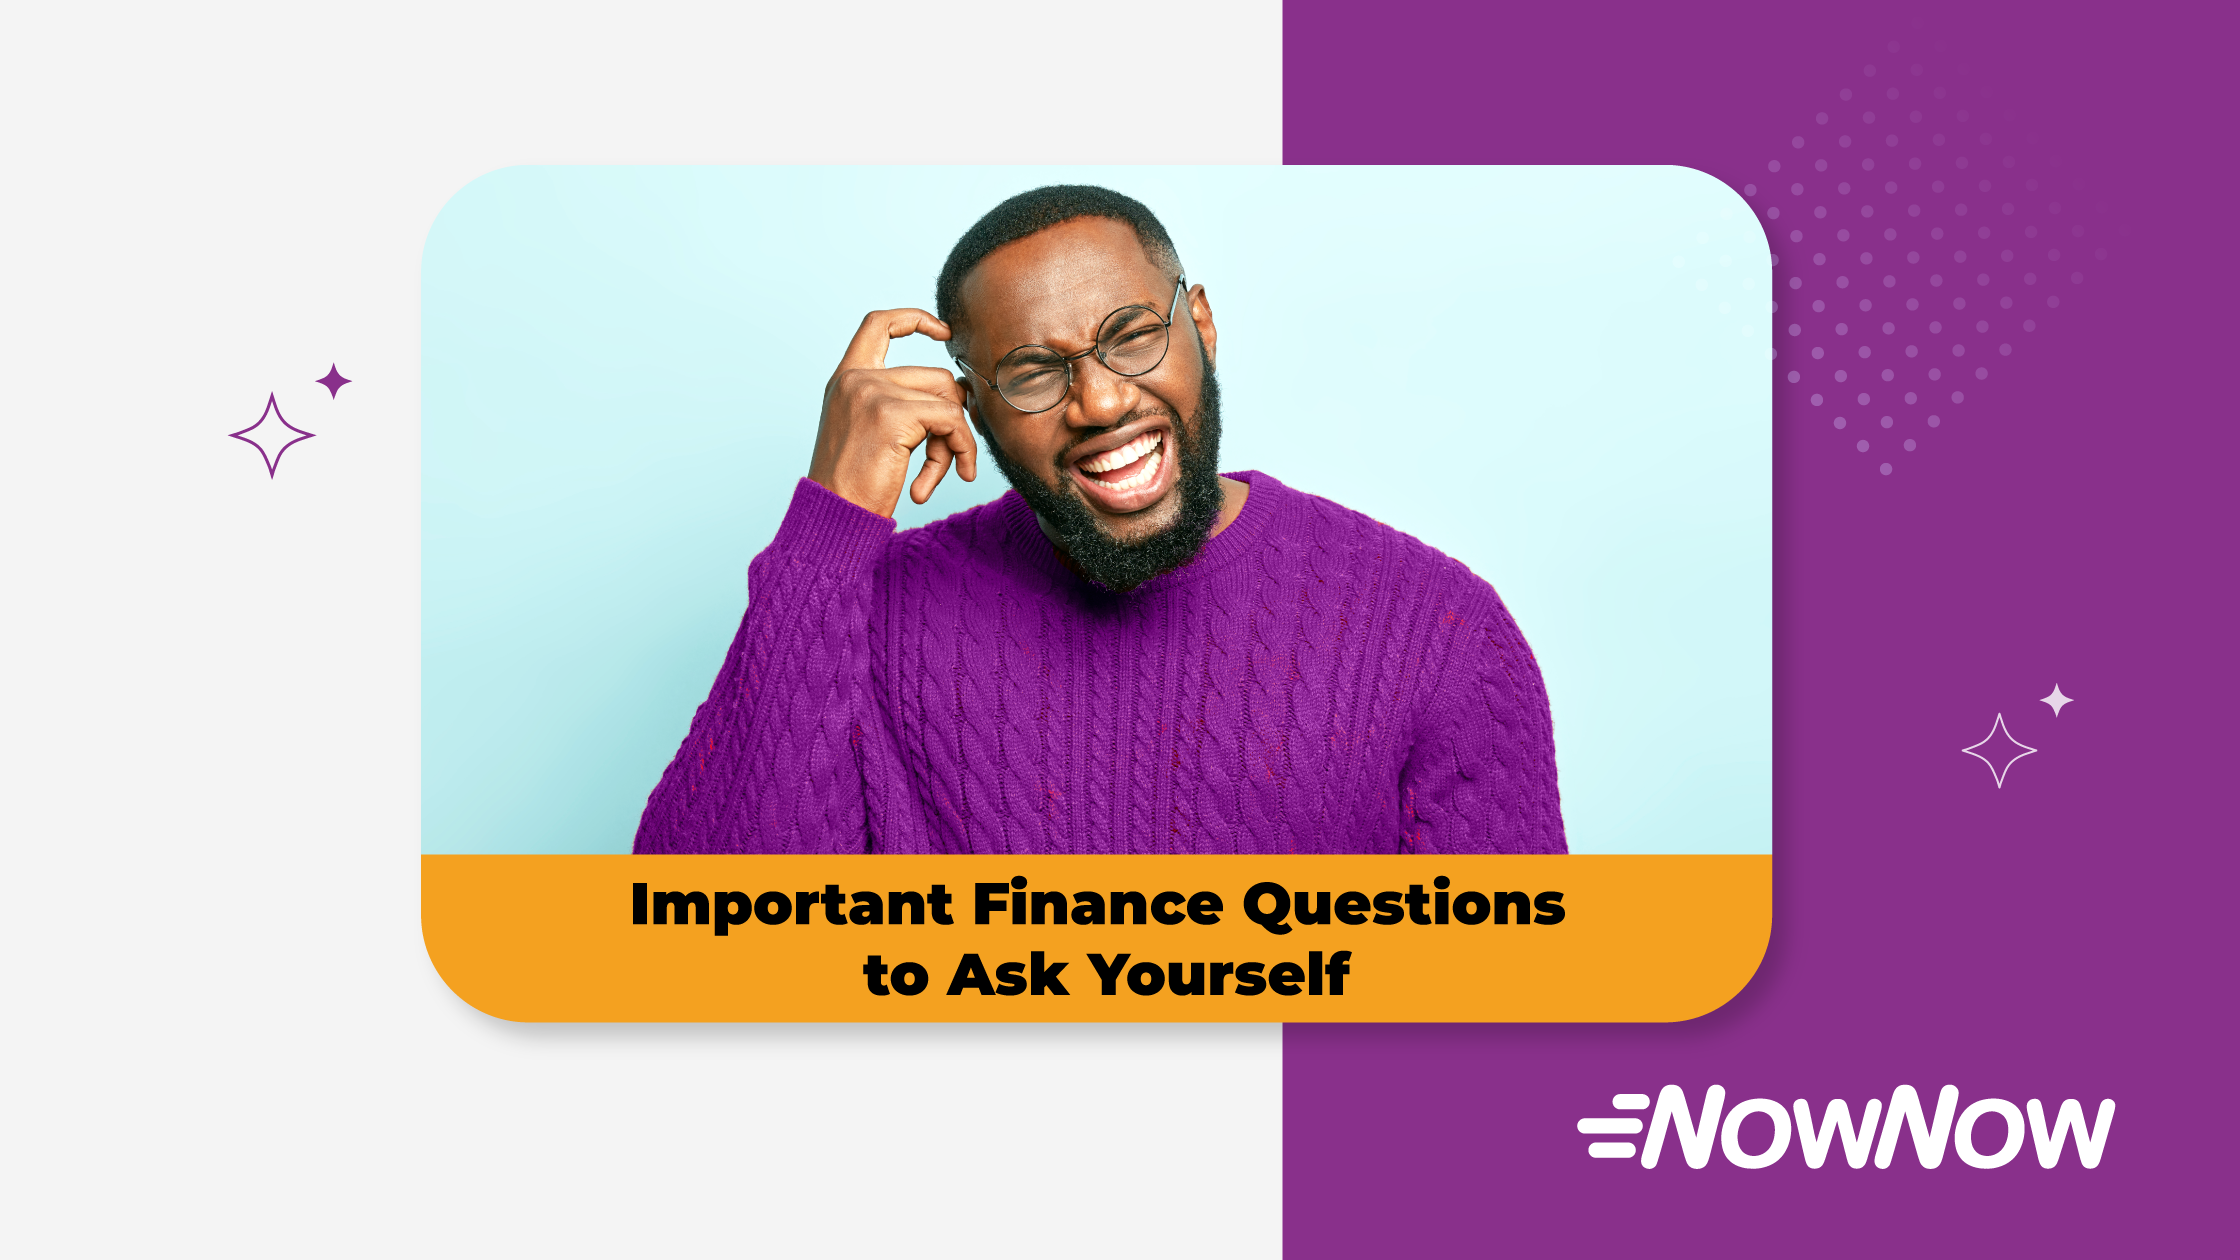 Important Finance Questions to Ask Yourself